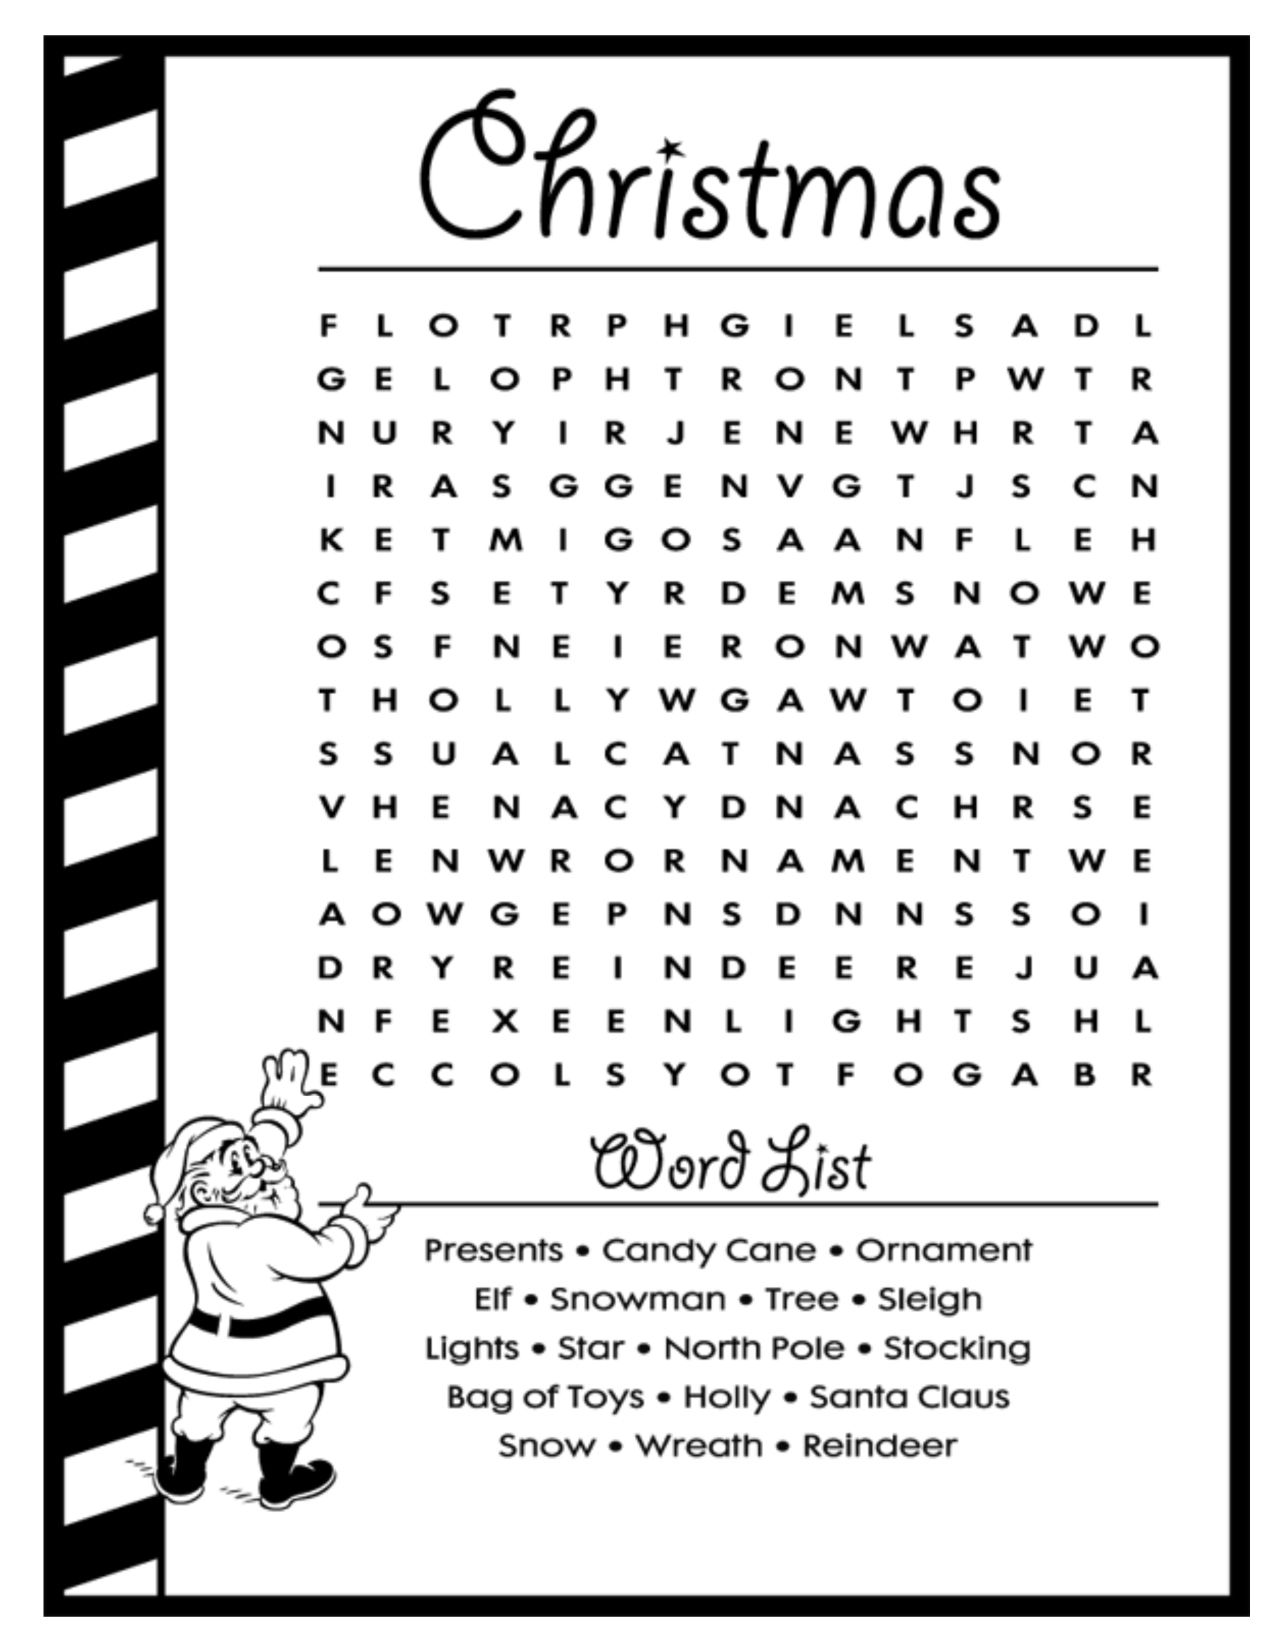 Christmaswordsearch1 1 275 1 650 Pixels